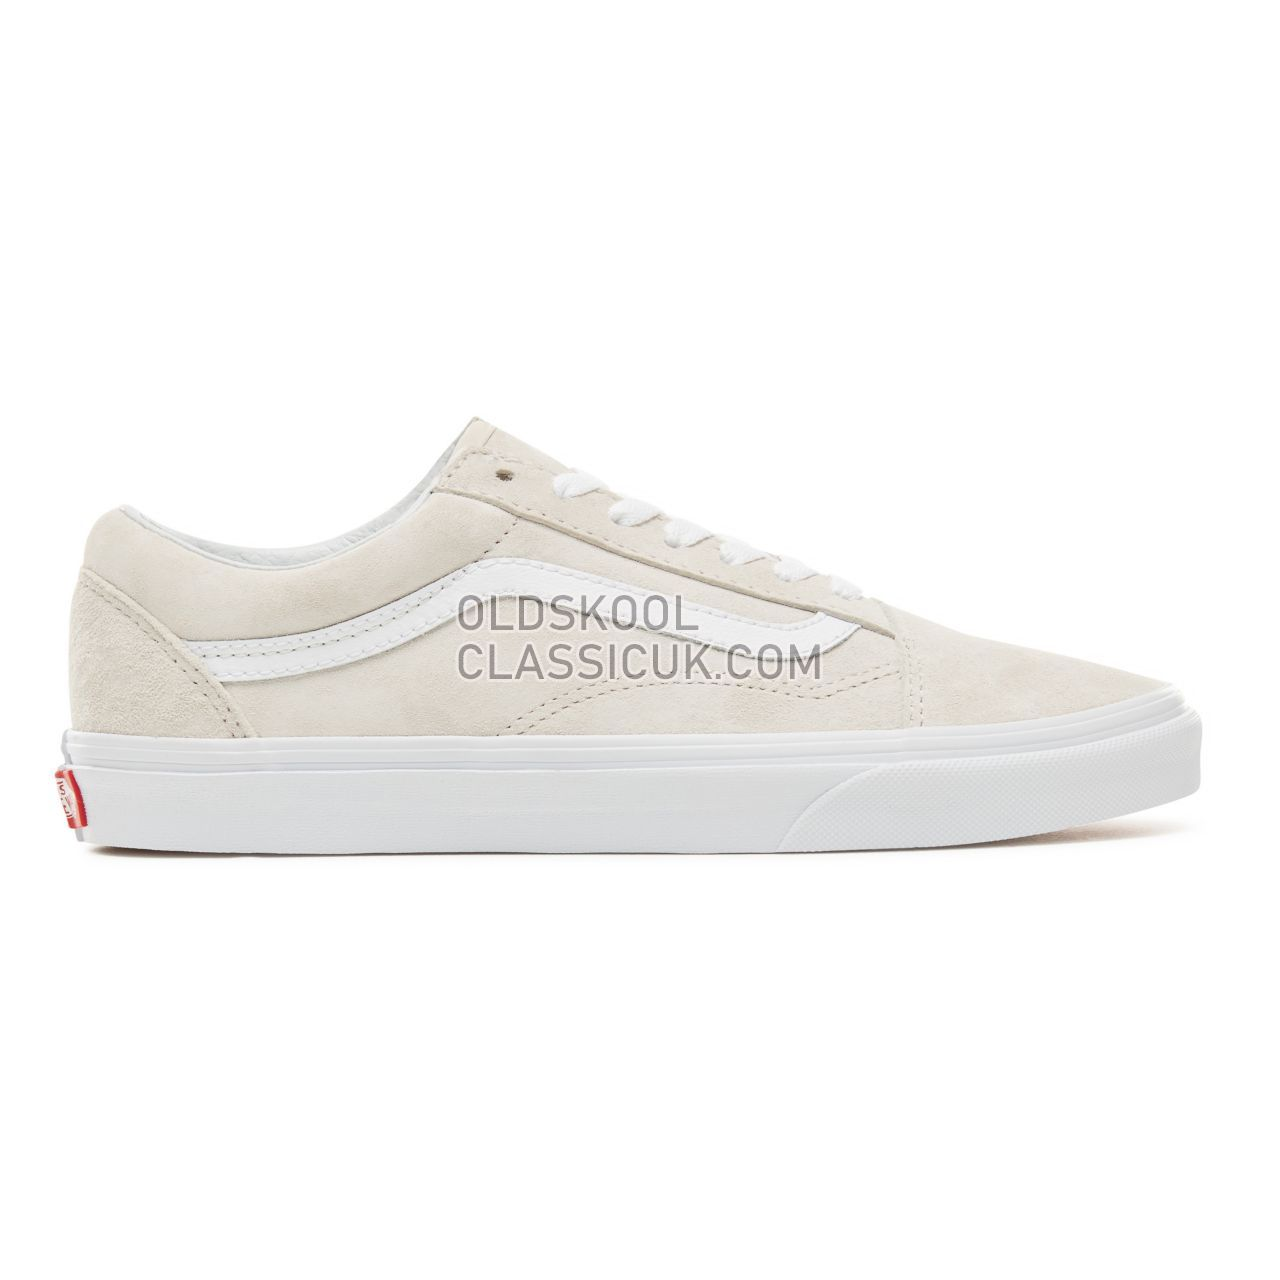 Vans Suede Old Skool Sneakers Mens Womens Unisex (Pig Suede) Moonbeam/True White VA38G1U5L Shoes